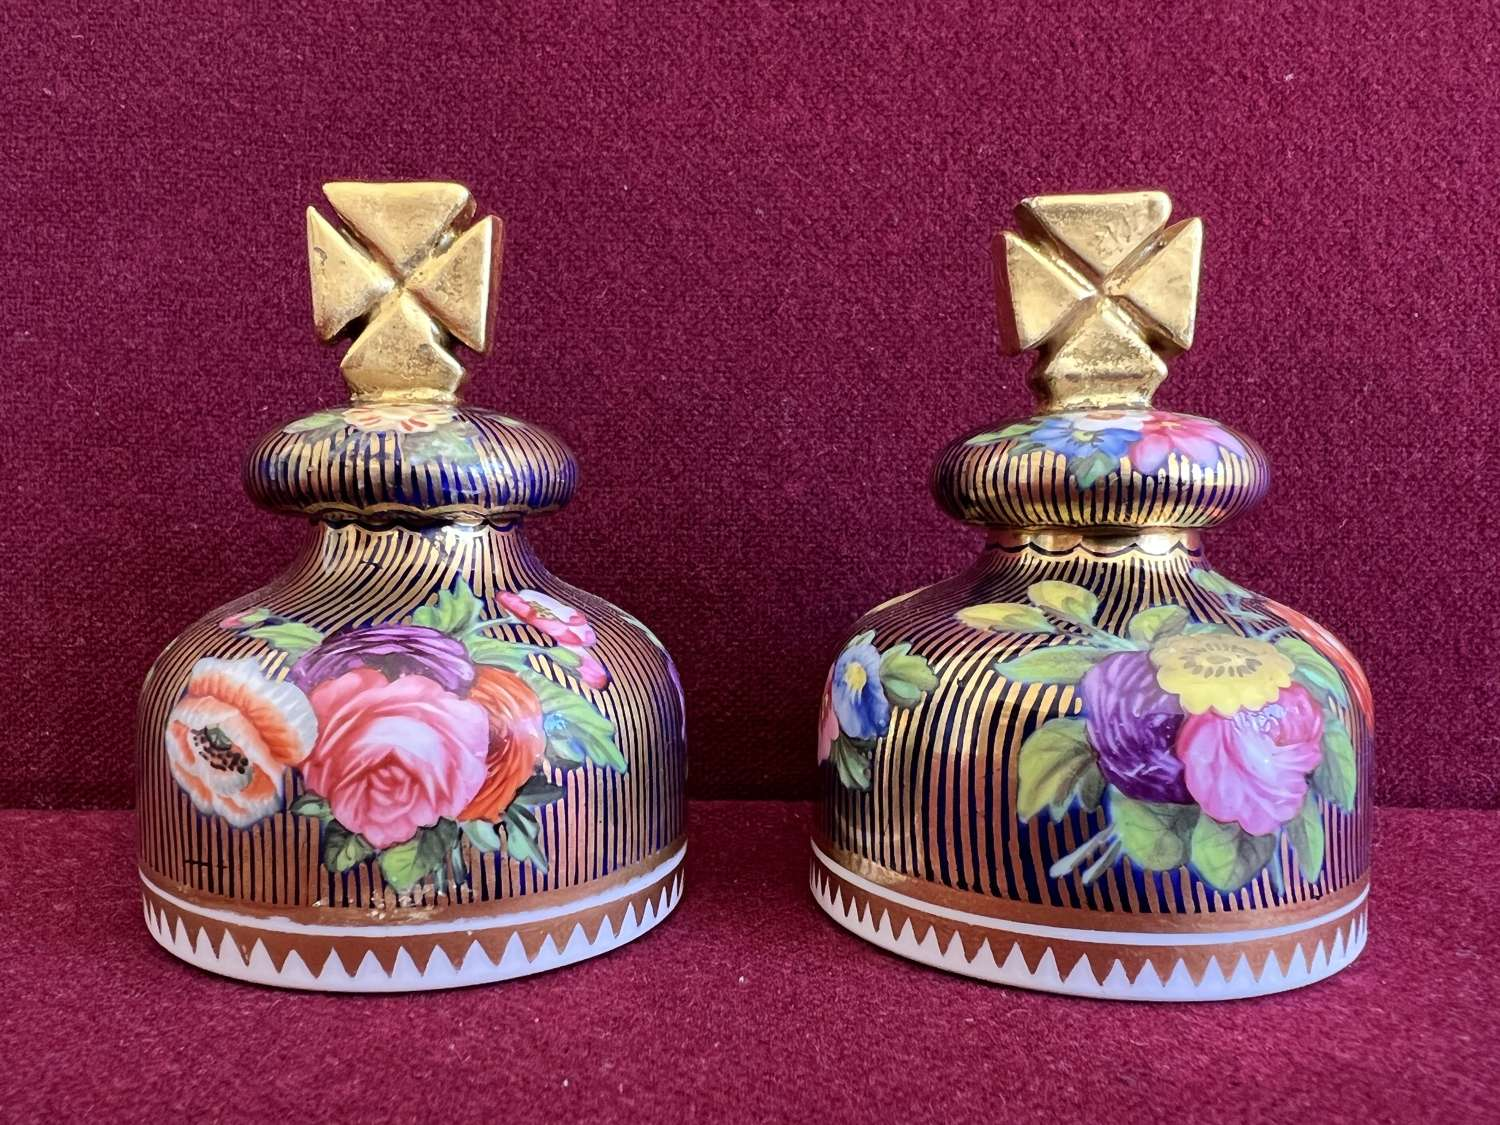 A rare pair of Spode pattern 2478 covered scent bottles c.1815-20